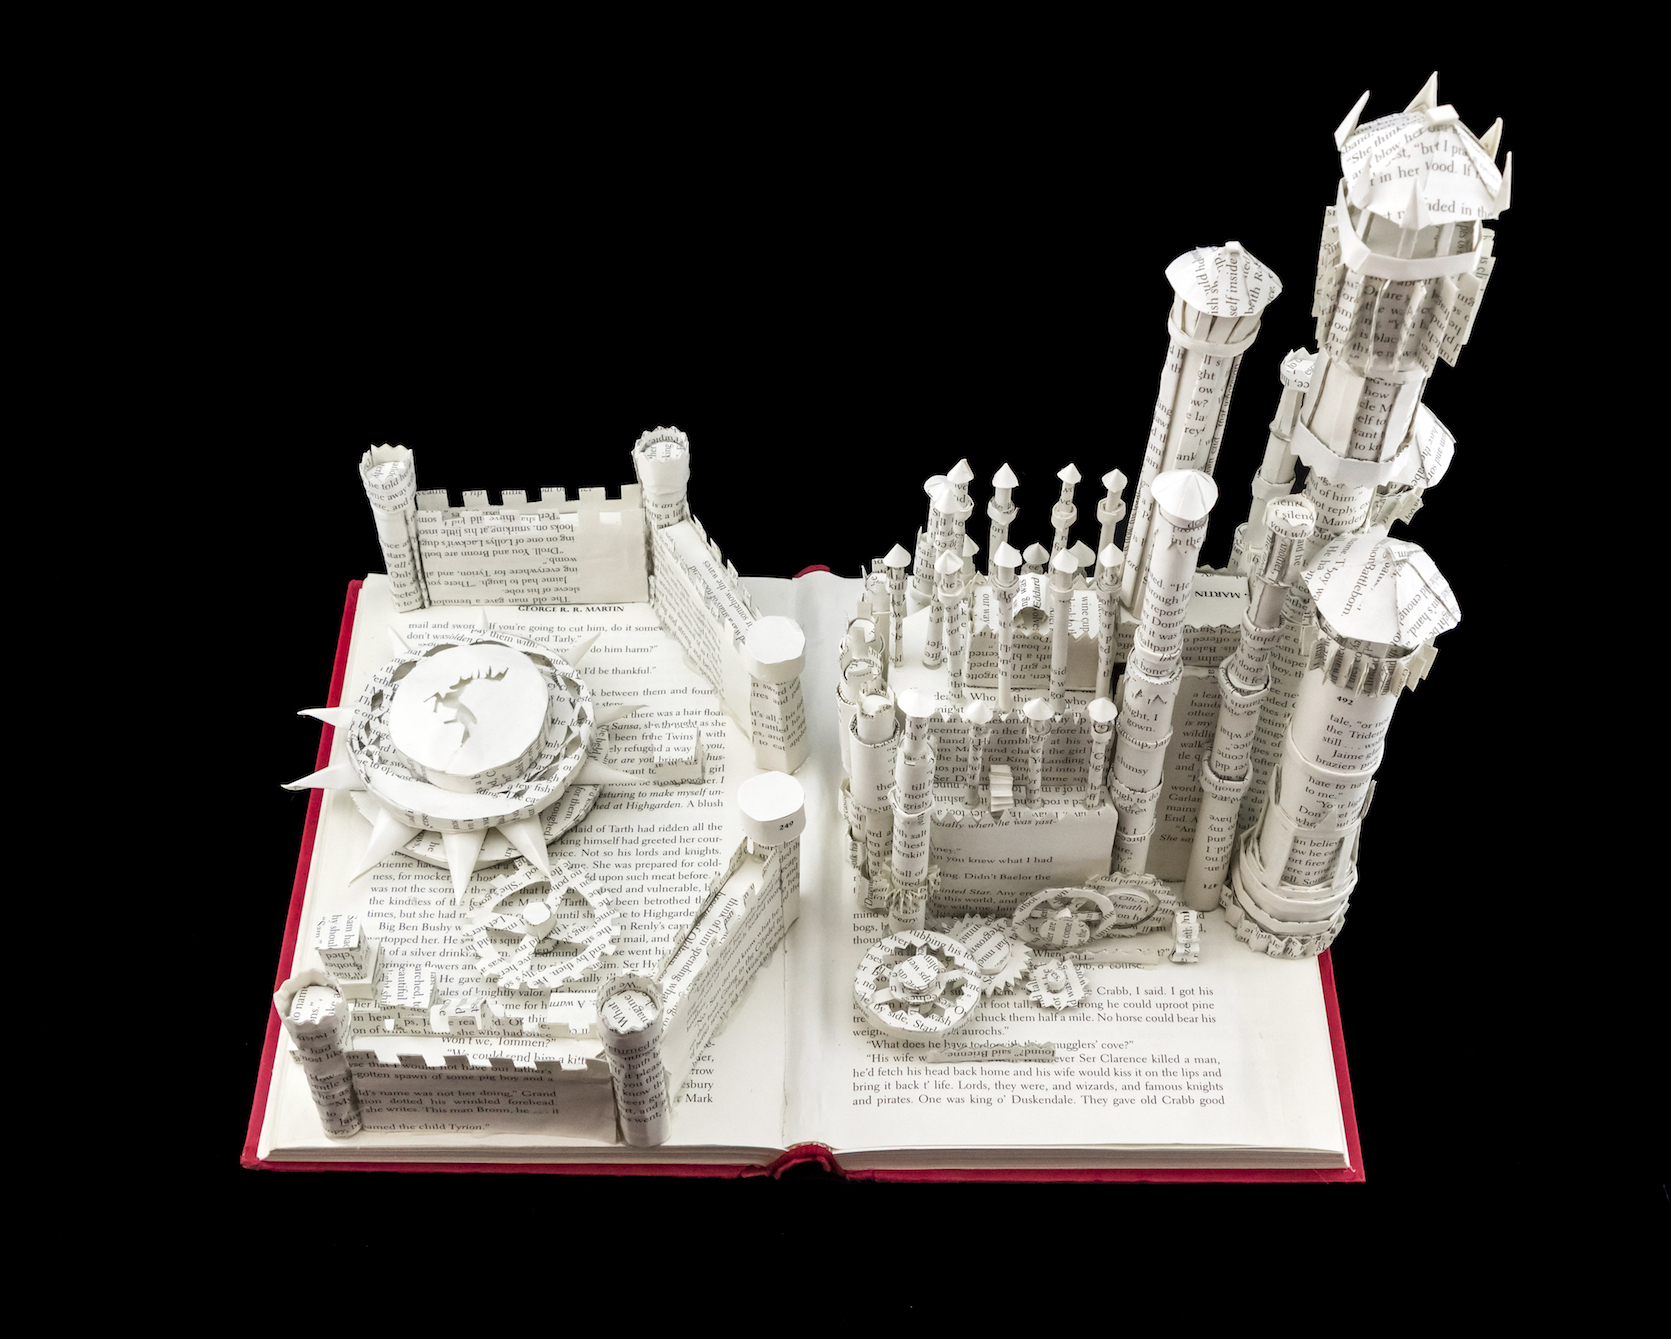 A Feast for Crows Book Sculpture of King's Landing by Jamie B. Hannigan